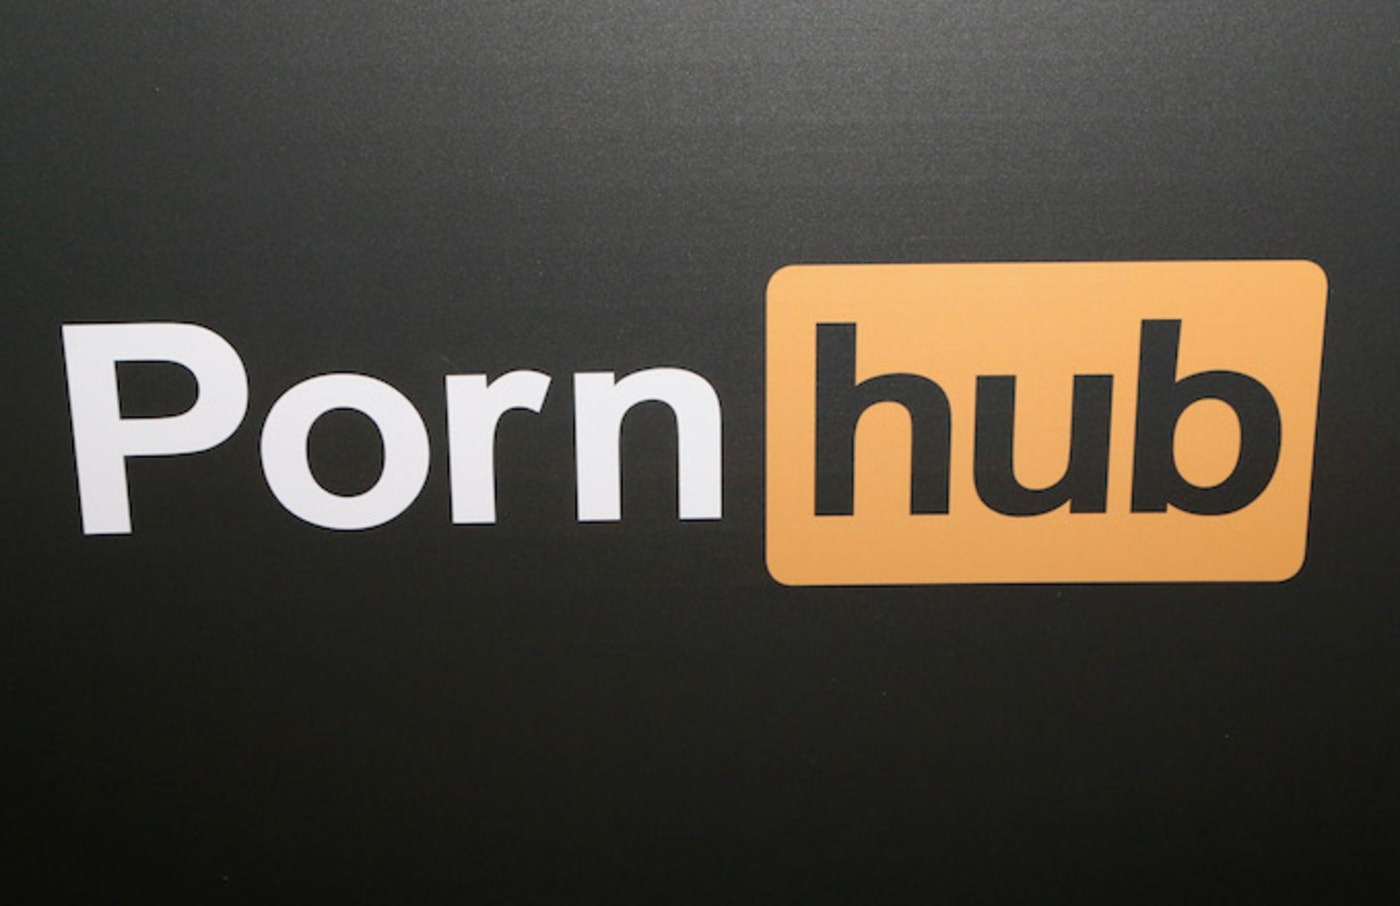 A Pornhub logo is displayed at the company's booth during the 2018 AVN Adult Expo.